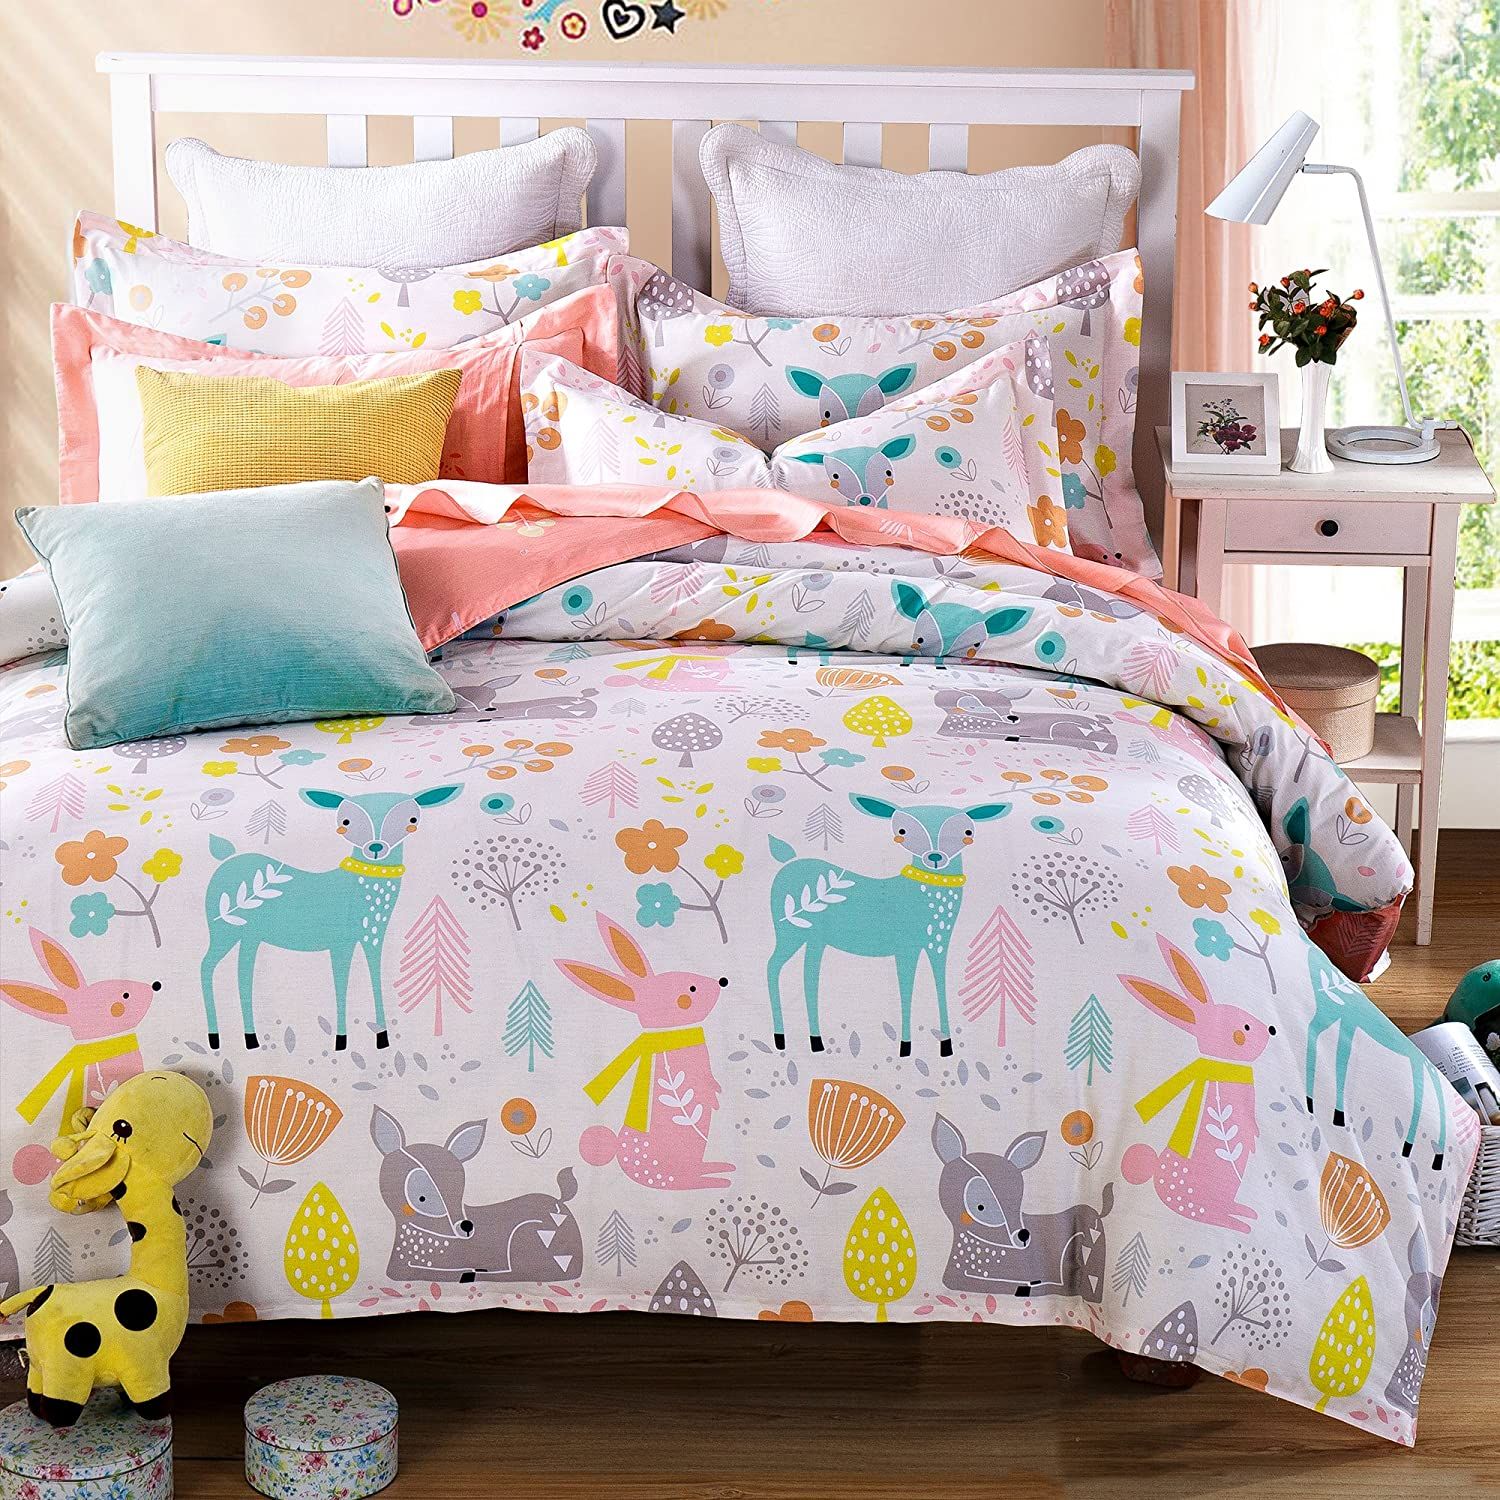 Cliab 7 Pieces Natural Cotton Woodland Themed Duvet Cover Set Plant and Animal in Peace Design Bedding Set Rabbit and Deer Friendship Duvet Covert Jungle Friends Bed Set for Kids Full Size